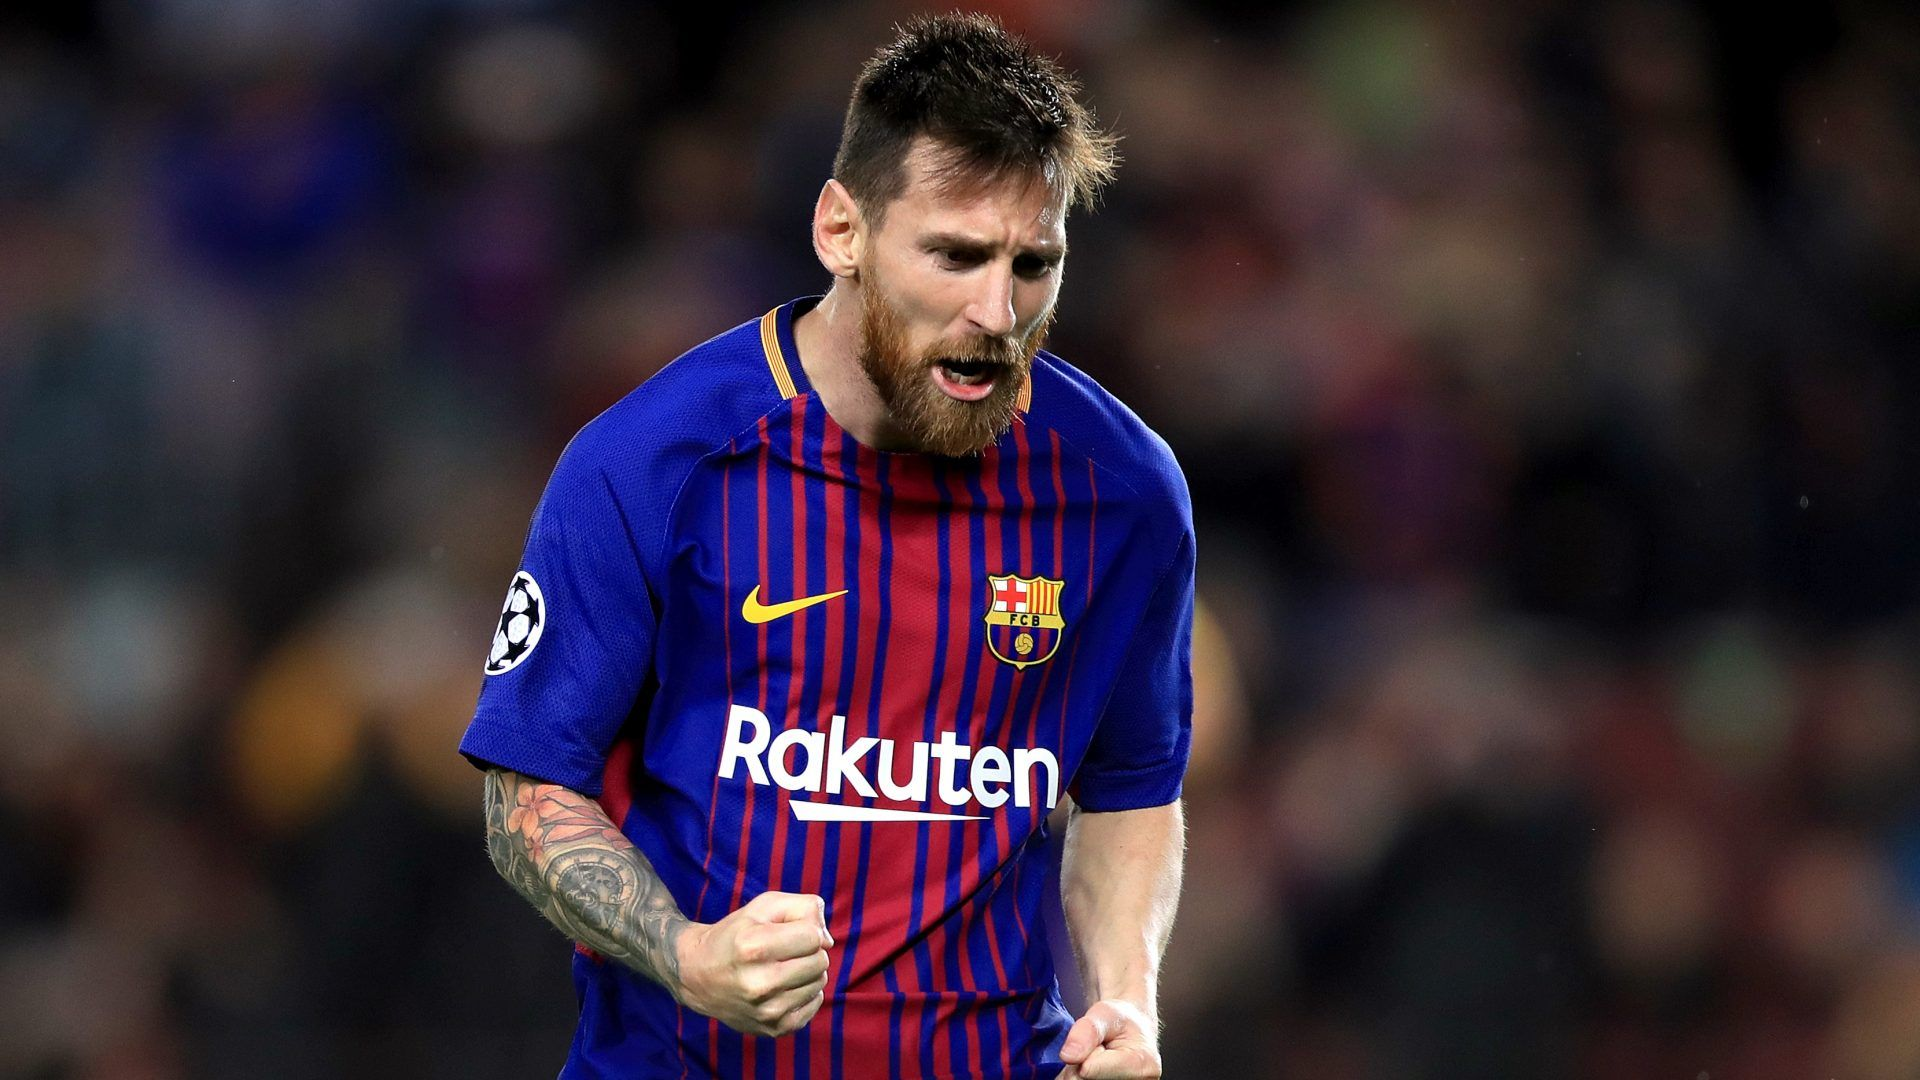 lionel messi signs new deal at barcelona through to summer of 2021 lionel messi leo messi messi lionel messi leo messi messi